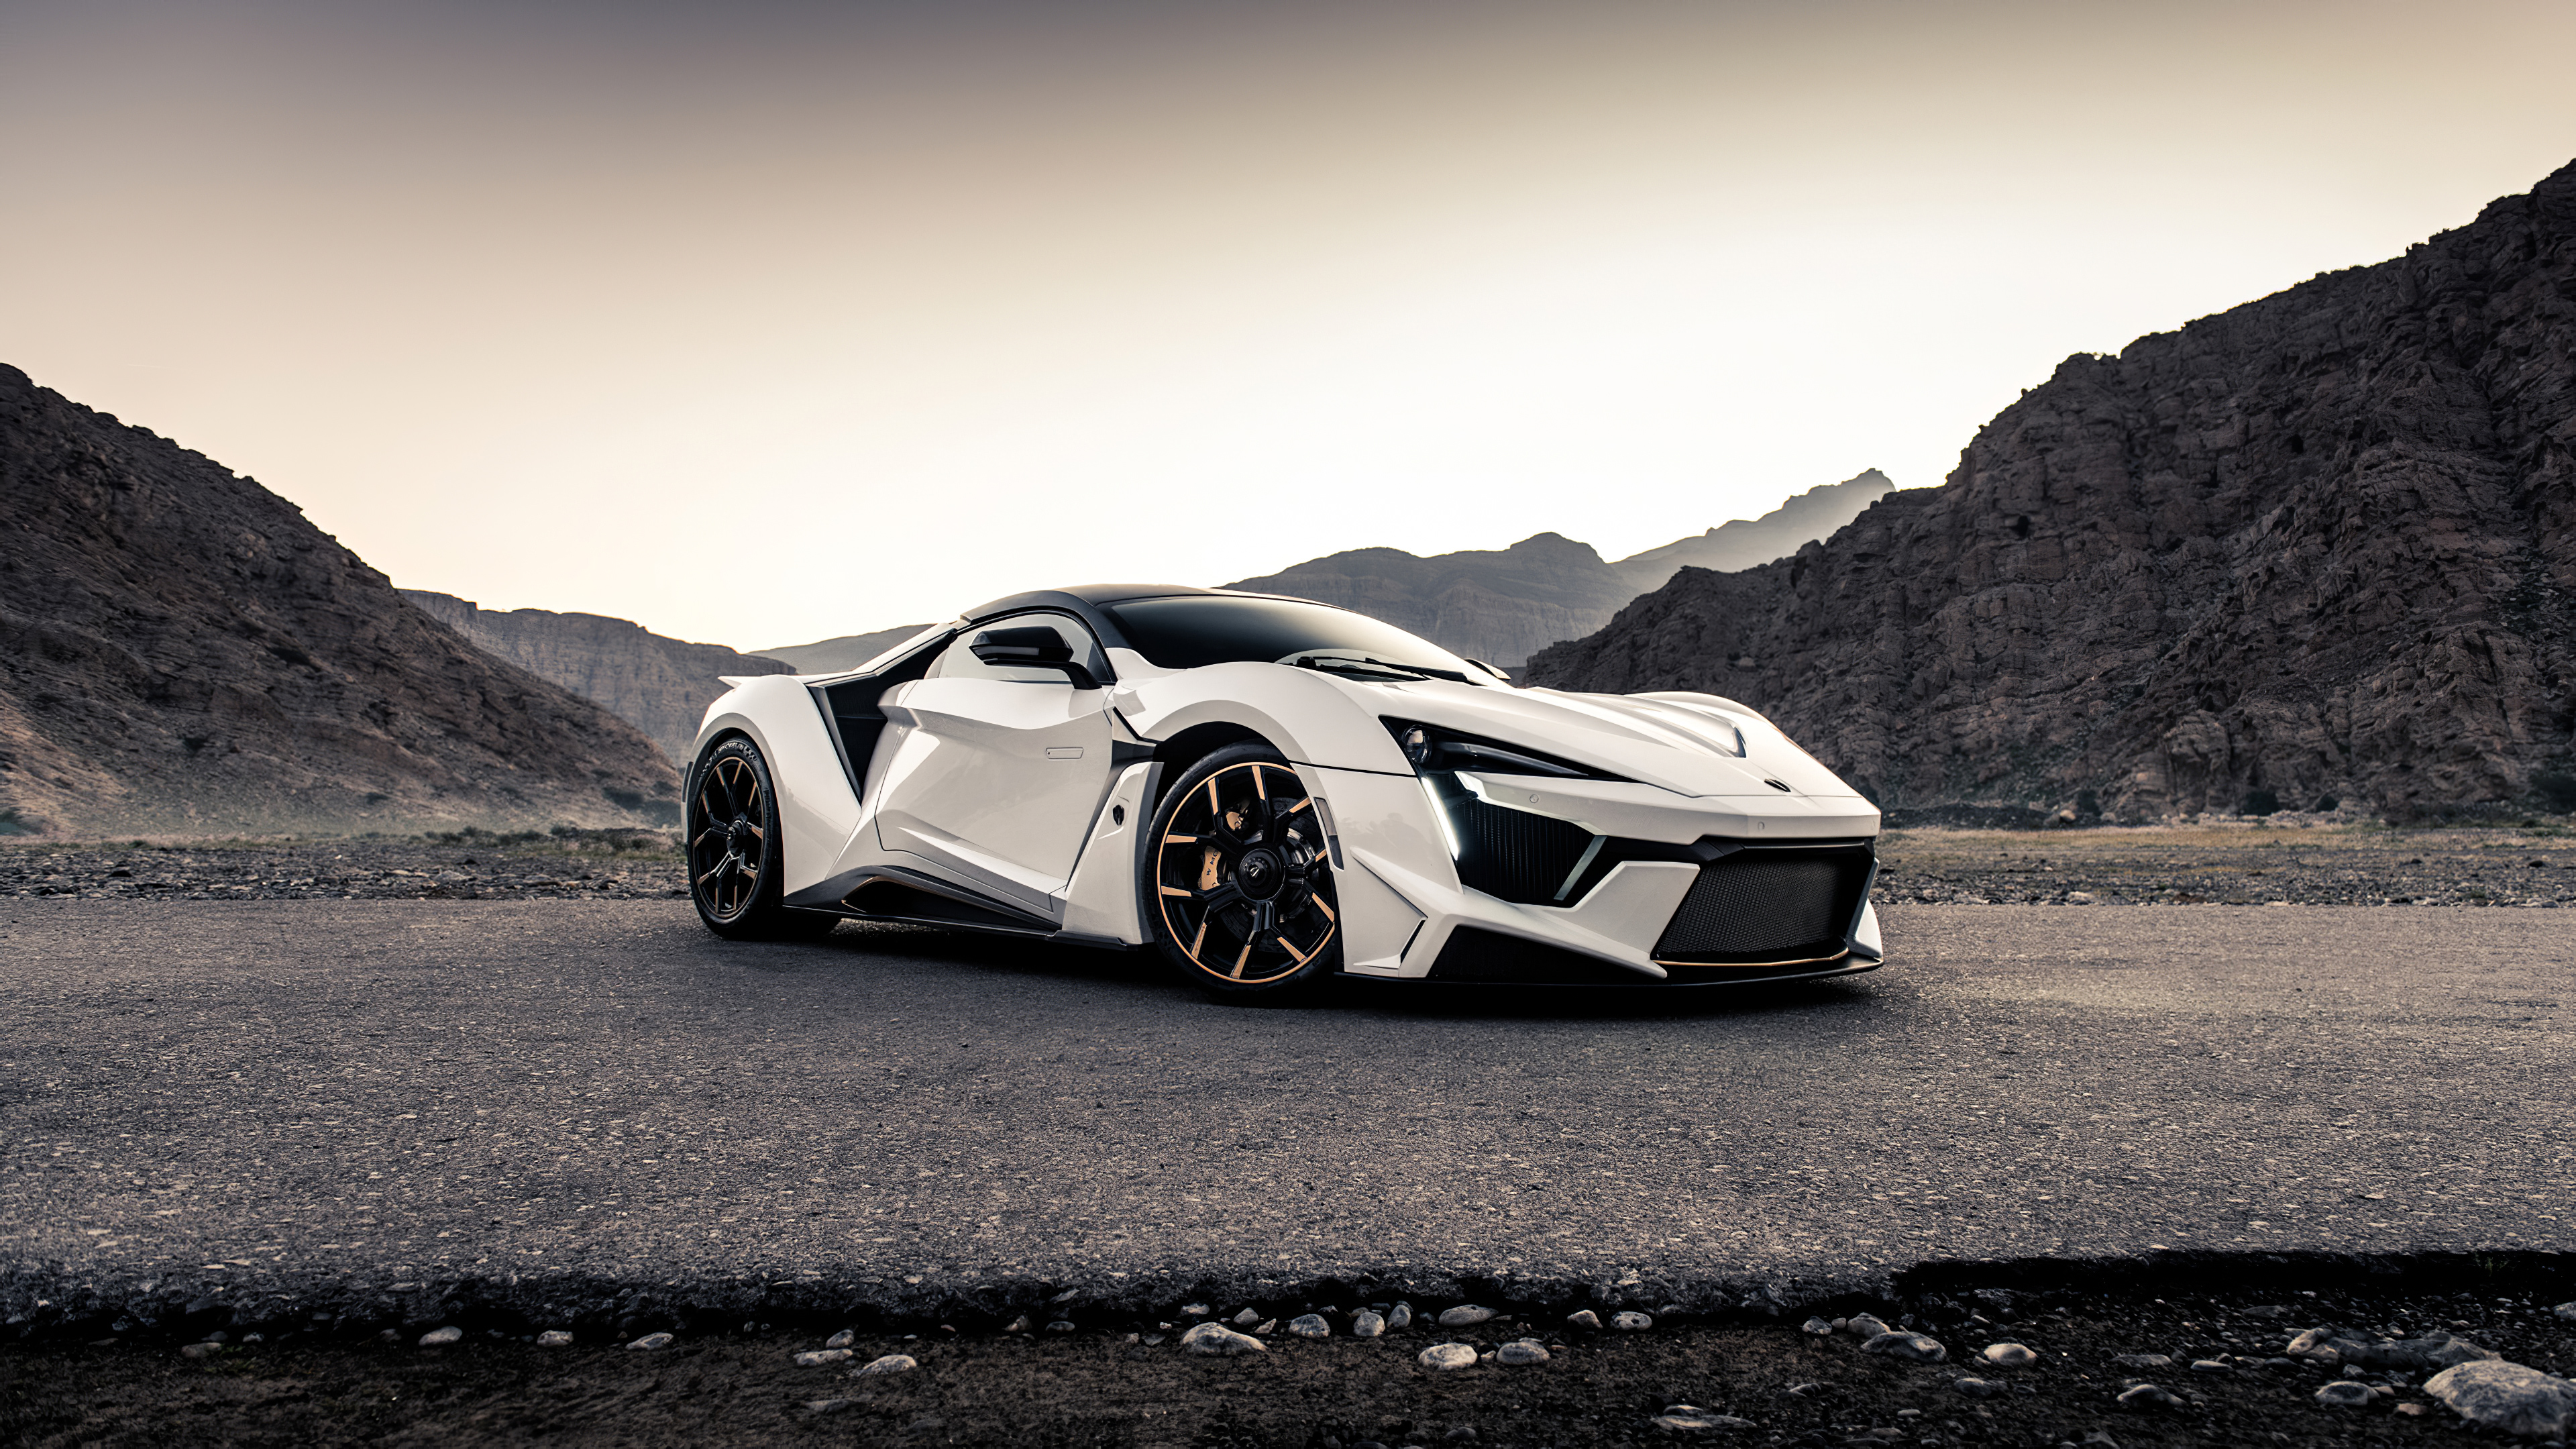 Lykan Hypersport Front 2020 Hd Cars 4k Wallpapers Images Backgrounds Photos And Pictures